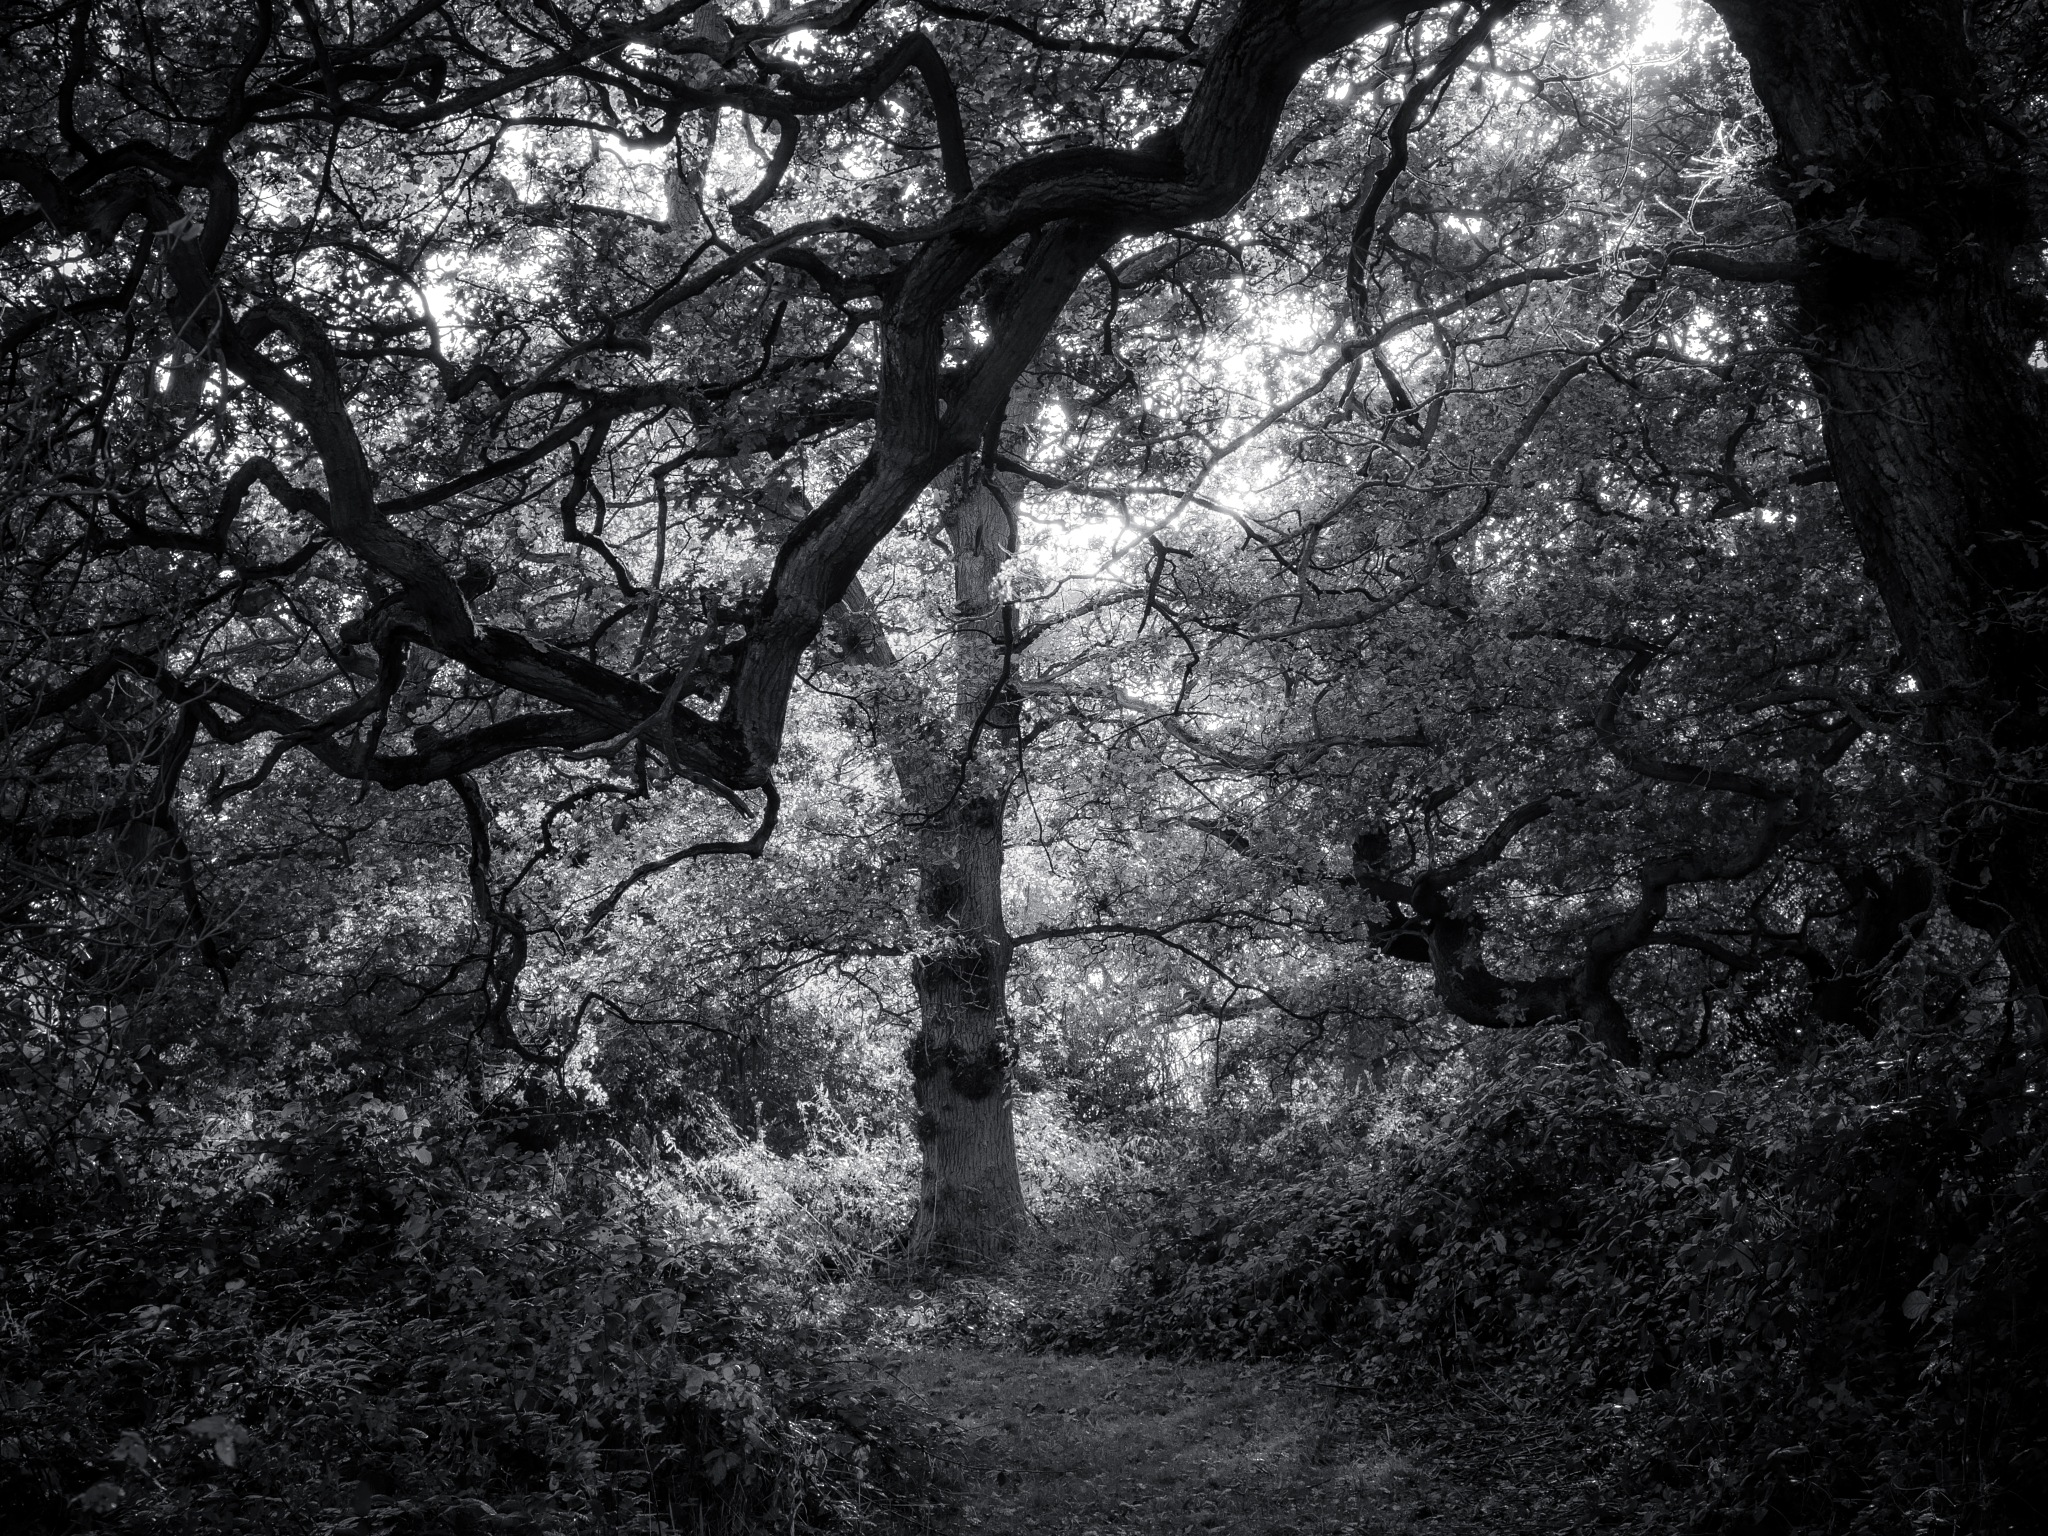 Dance of the Branches by Sarah Walters